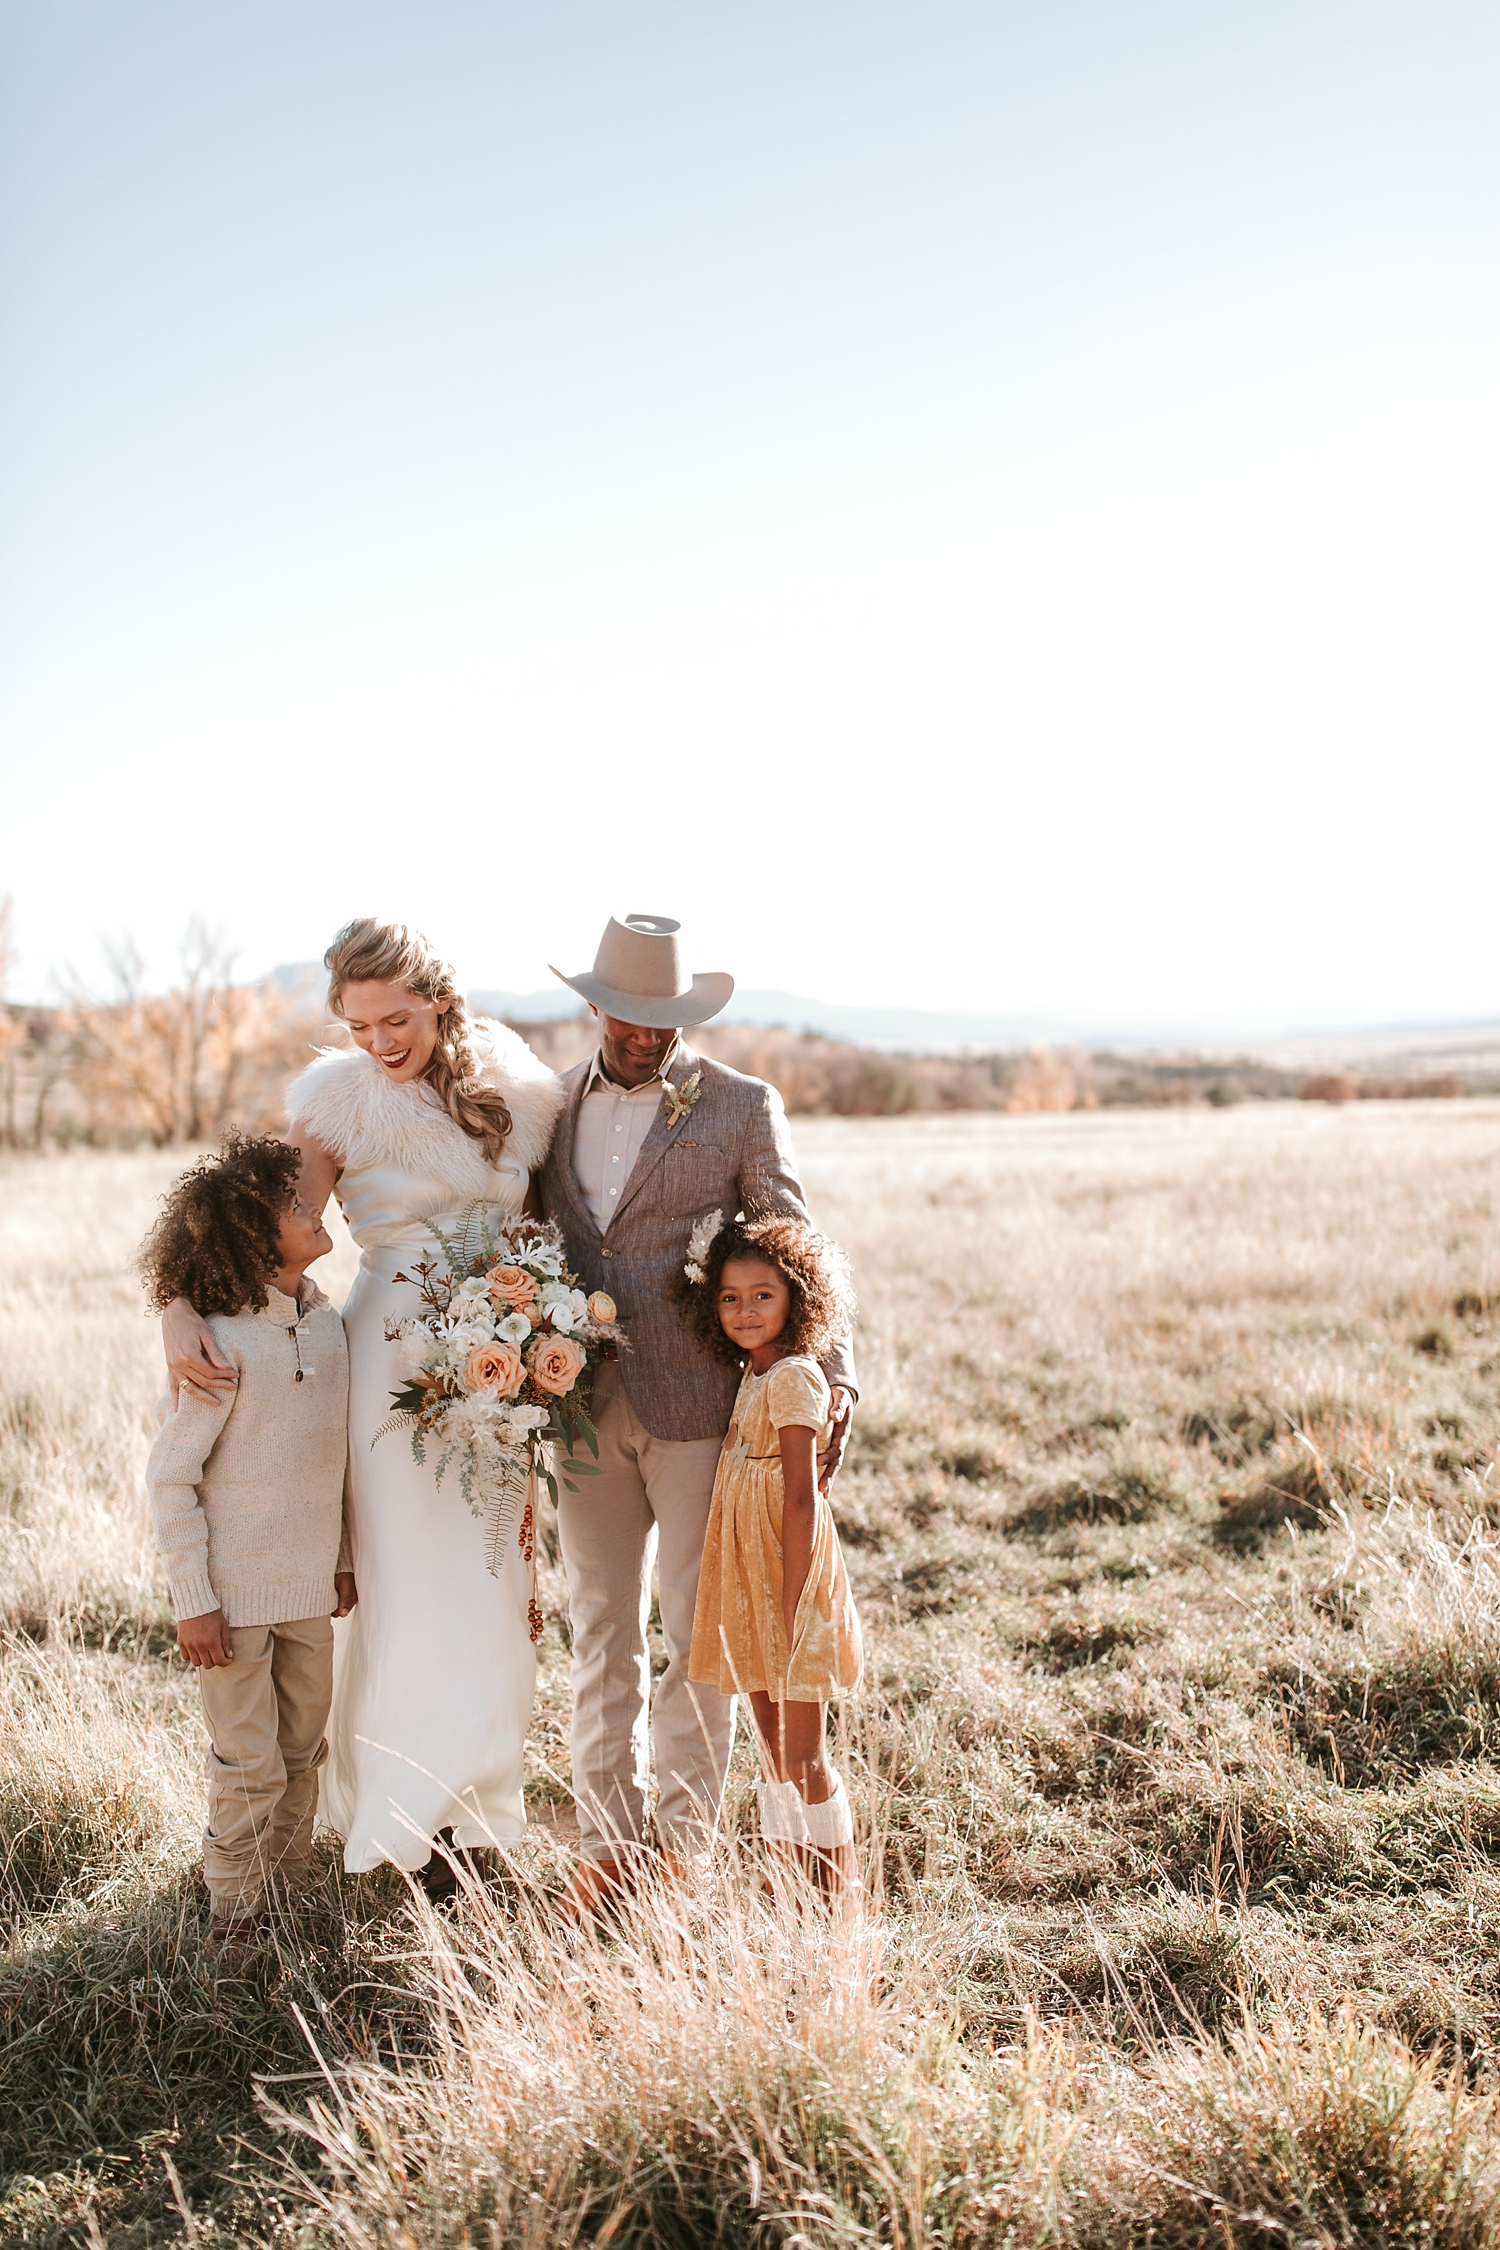 Alicia+lucia+photography+-+albuquerque+wedding+photographer+-+santa+fe+wedding+photography+-+new+mexico+wedding+photographer+-+new+mexico+ghost+ranch+wedding+-+styled+wedding+shoot_0023.jpg